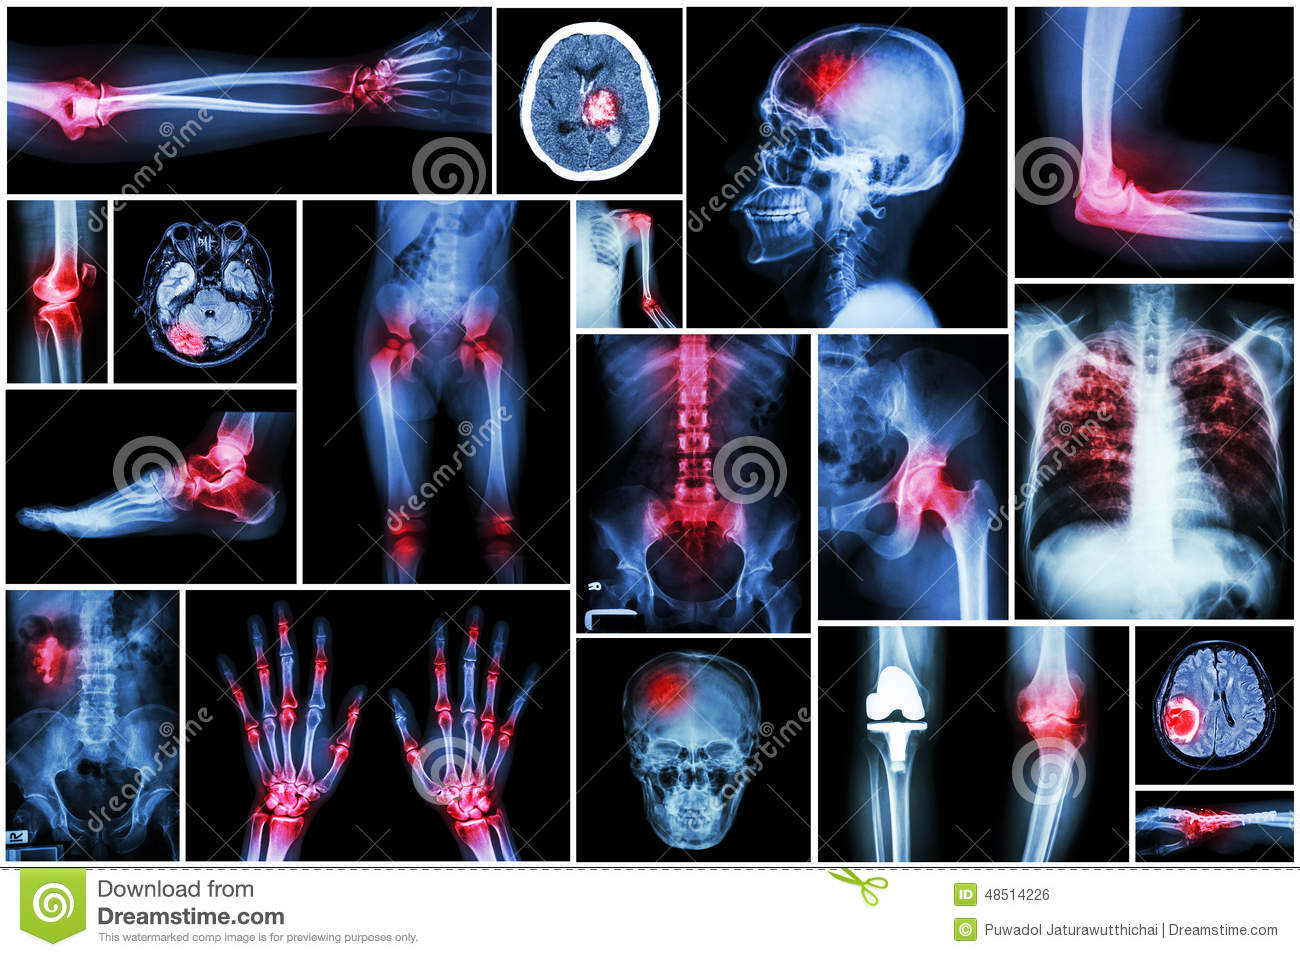 Collection x-ray multiple disease (arthritis,stroke,brain tumor,gout,rheumatoid,kidney stonepulmonary